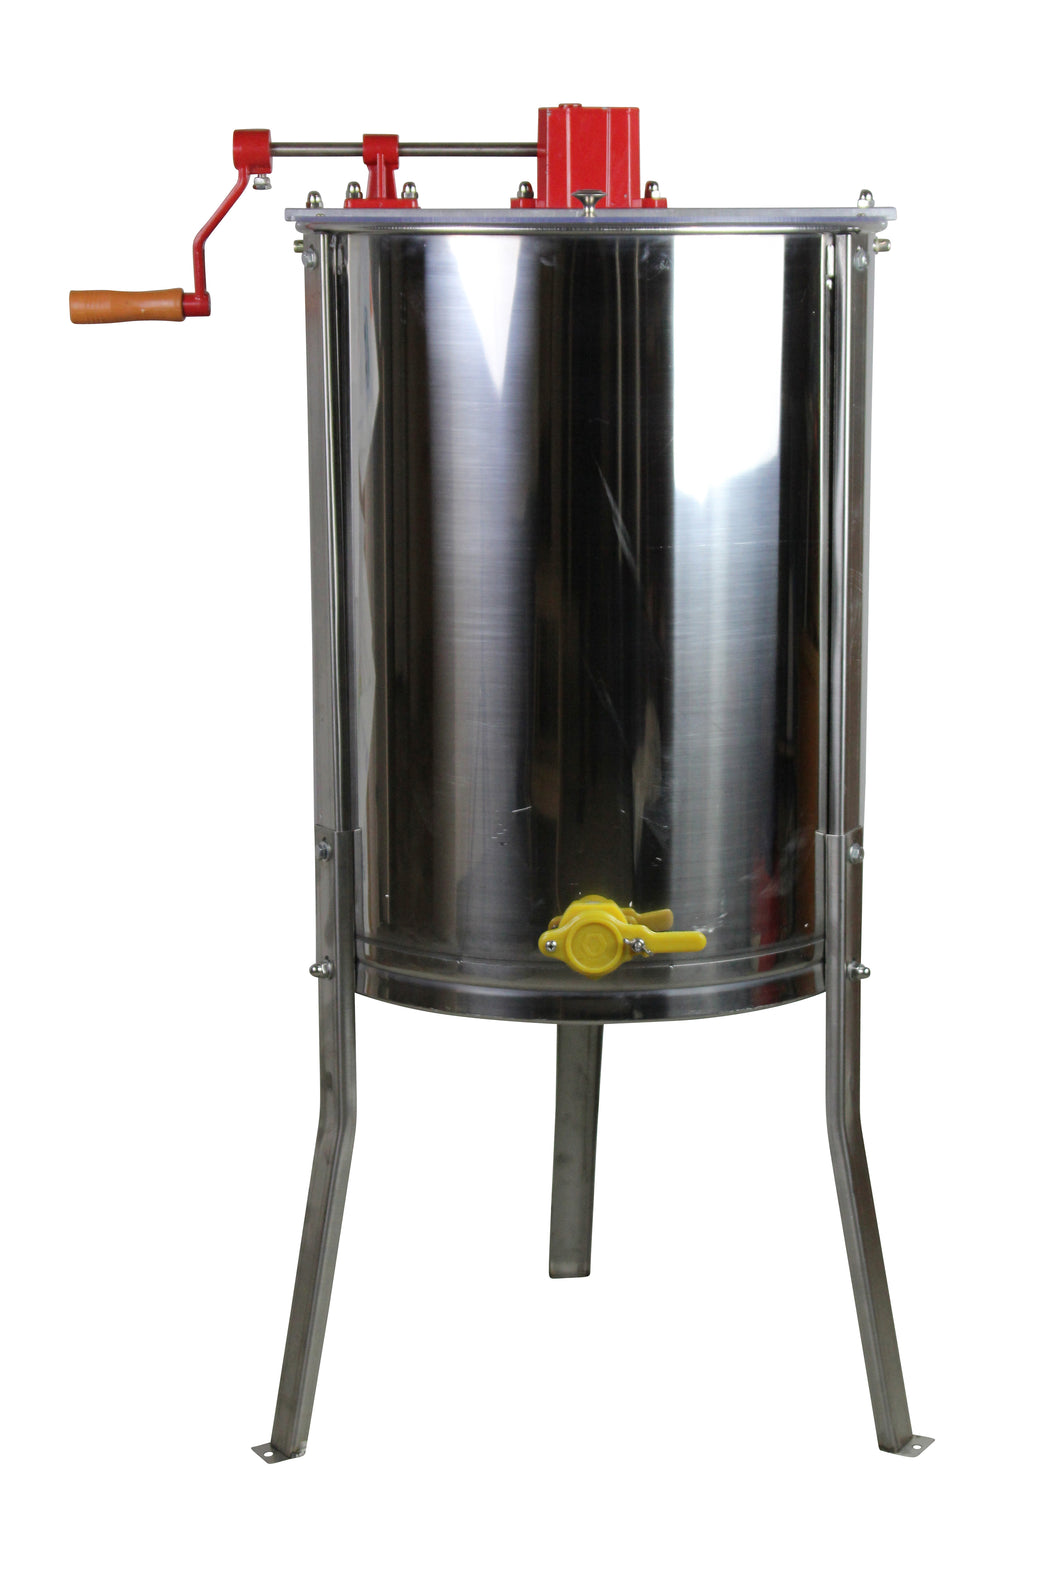 4 frame honey extractor spinner